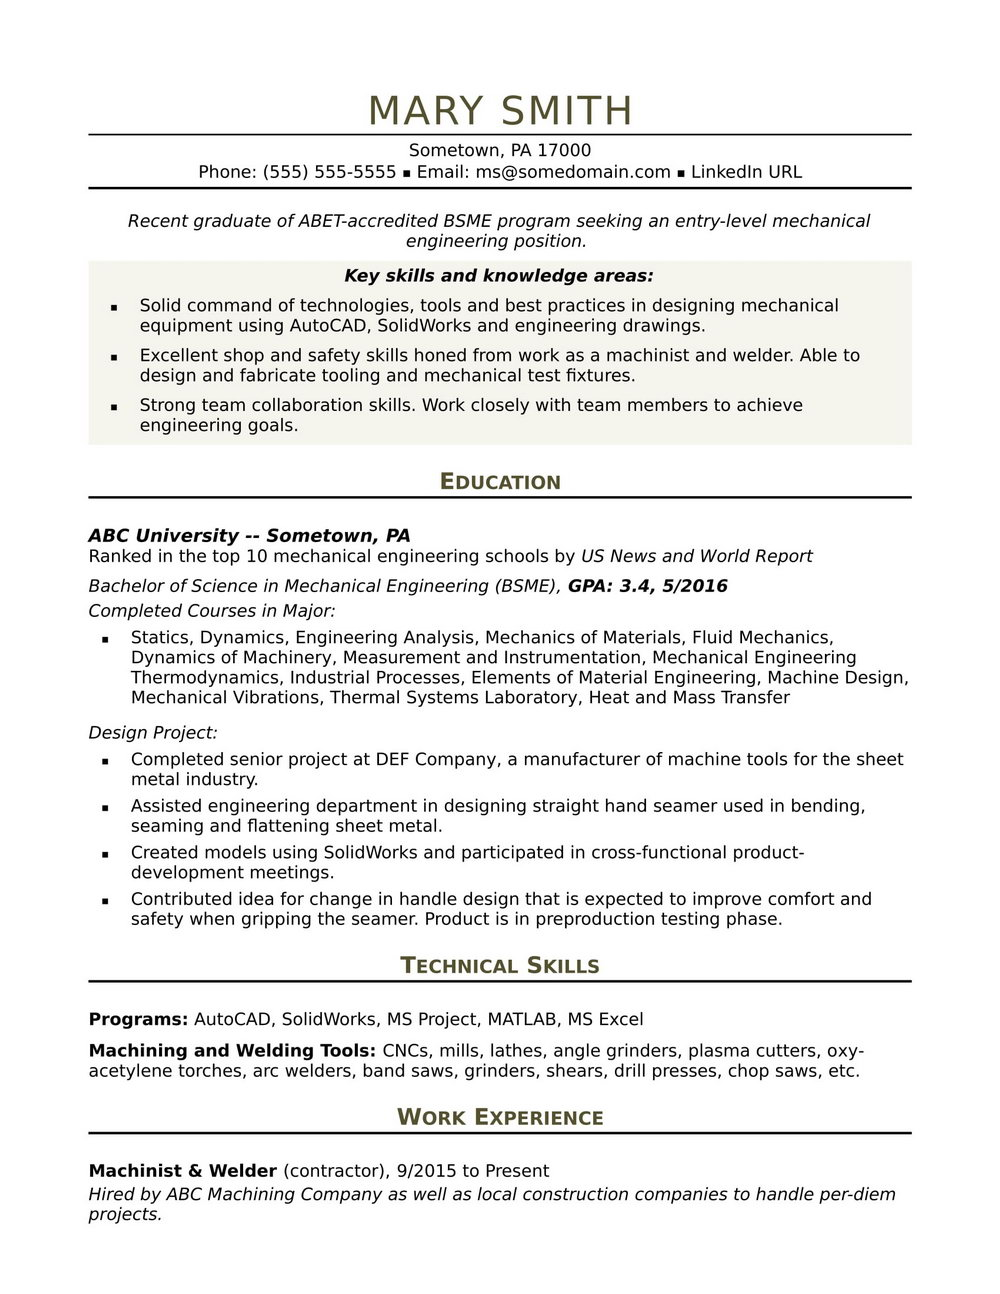 Sample Of Resume For Engineering Jobs